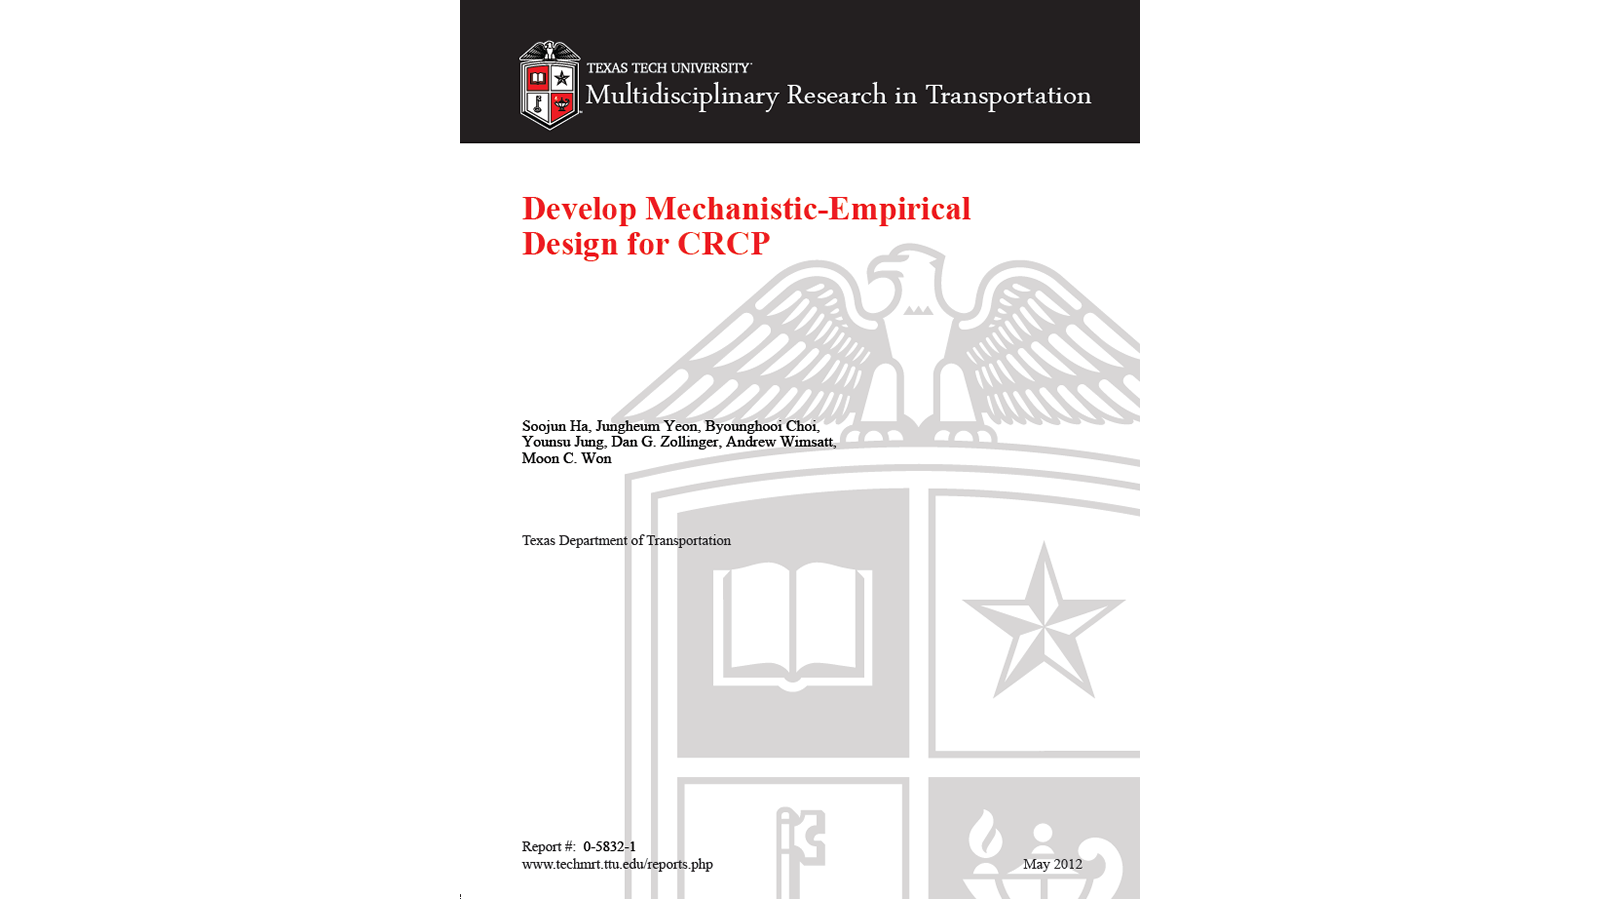 Develop Mechanistic-Empirical Design for CRCP (FHWA/TX-11-0-5832-1)